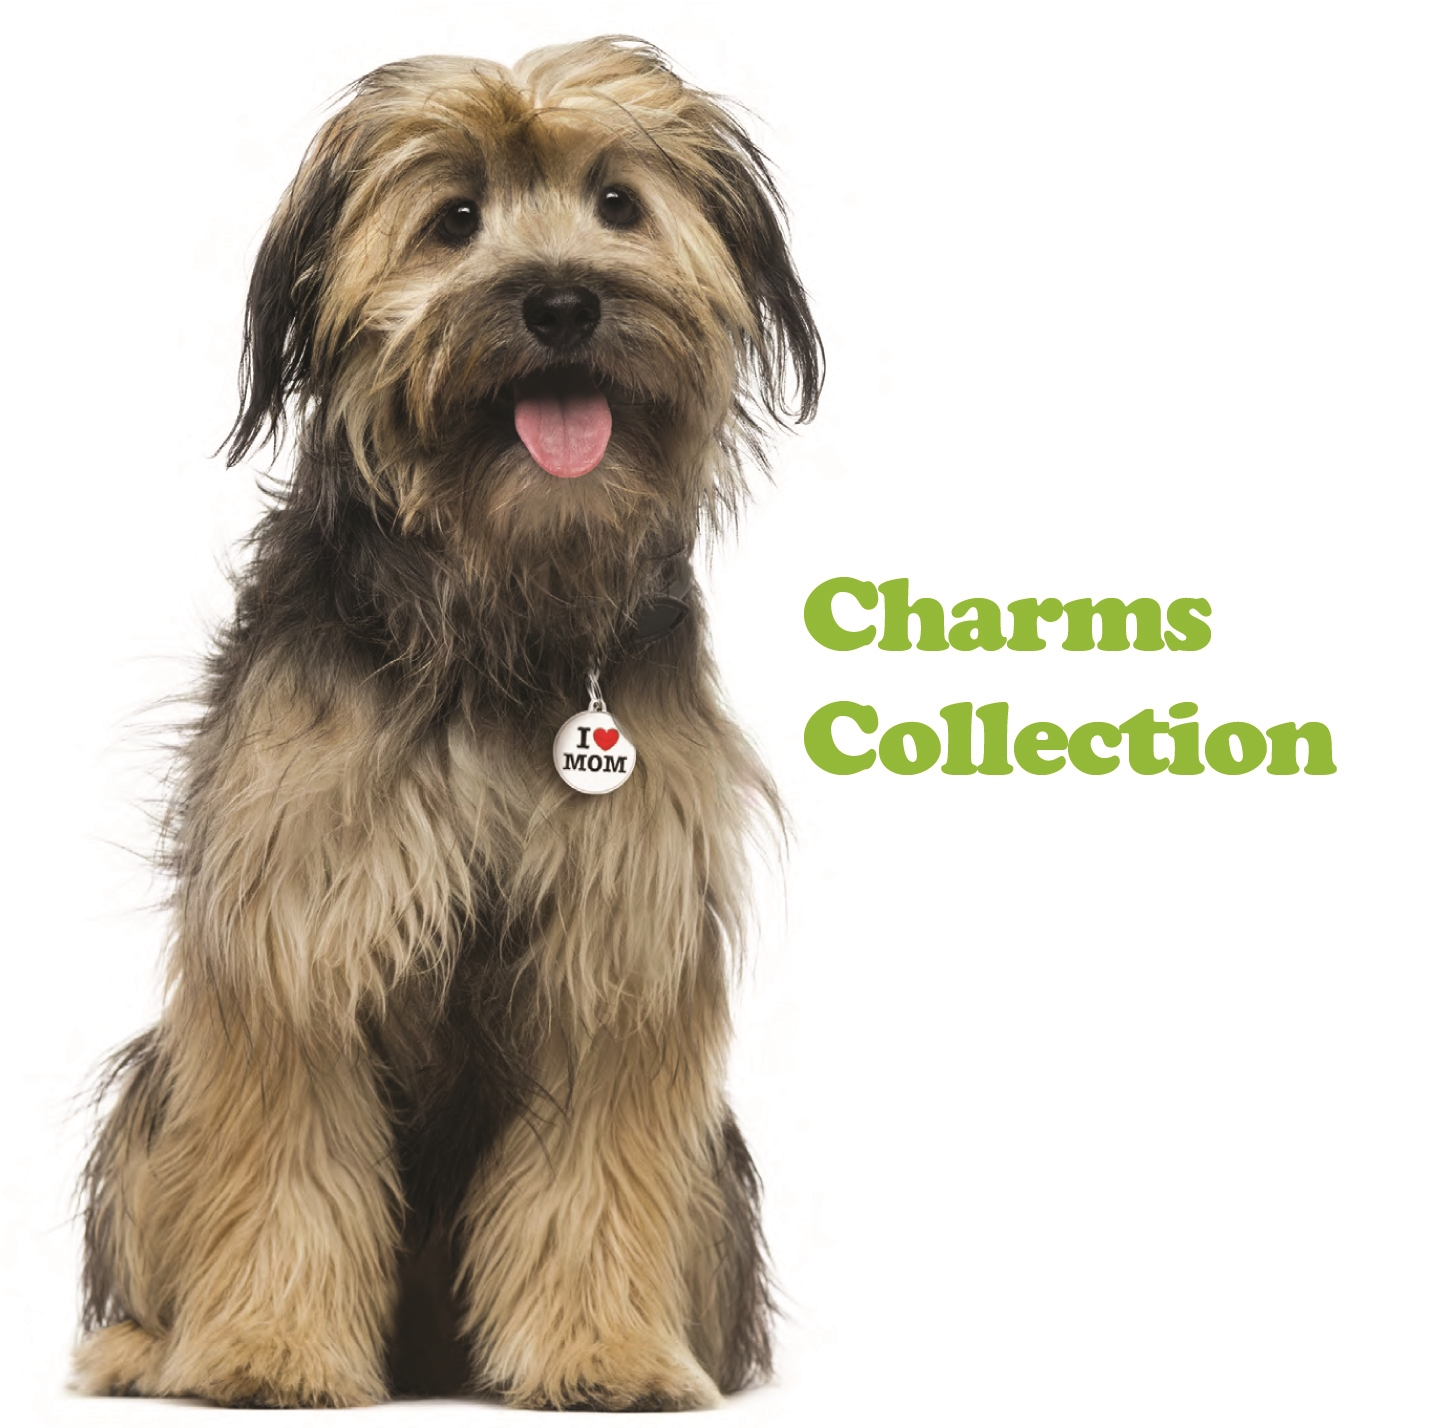 CHARMS collection